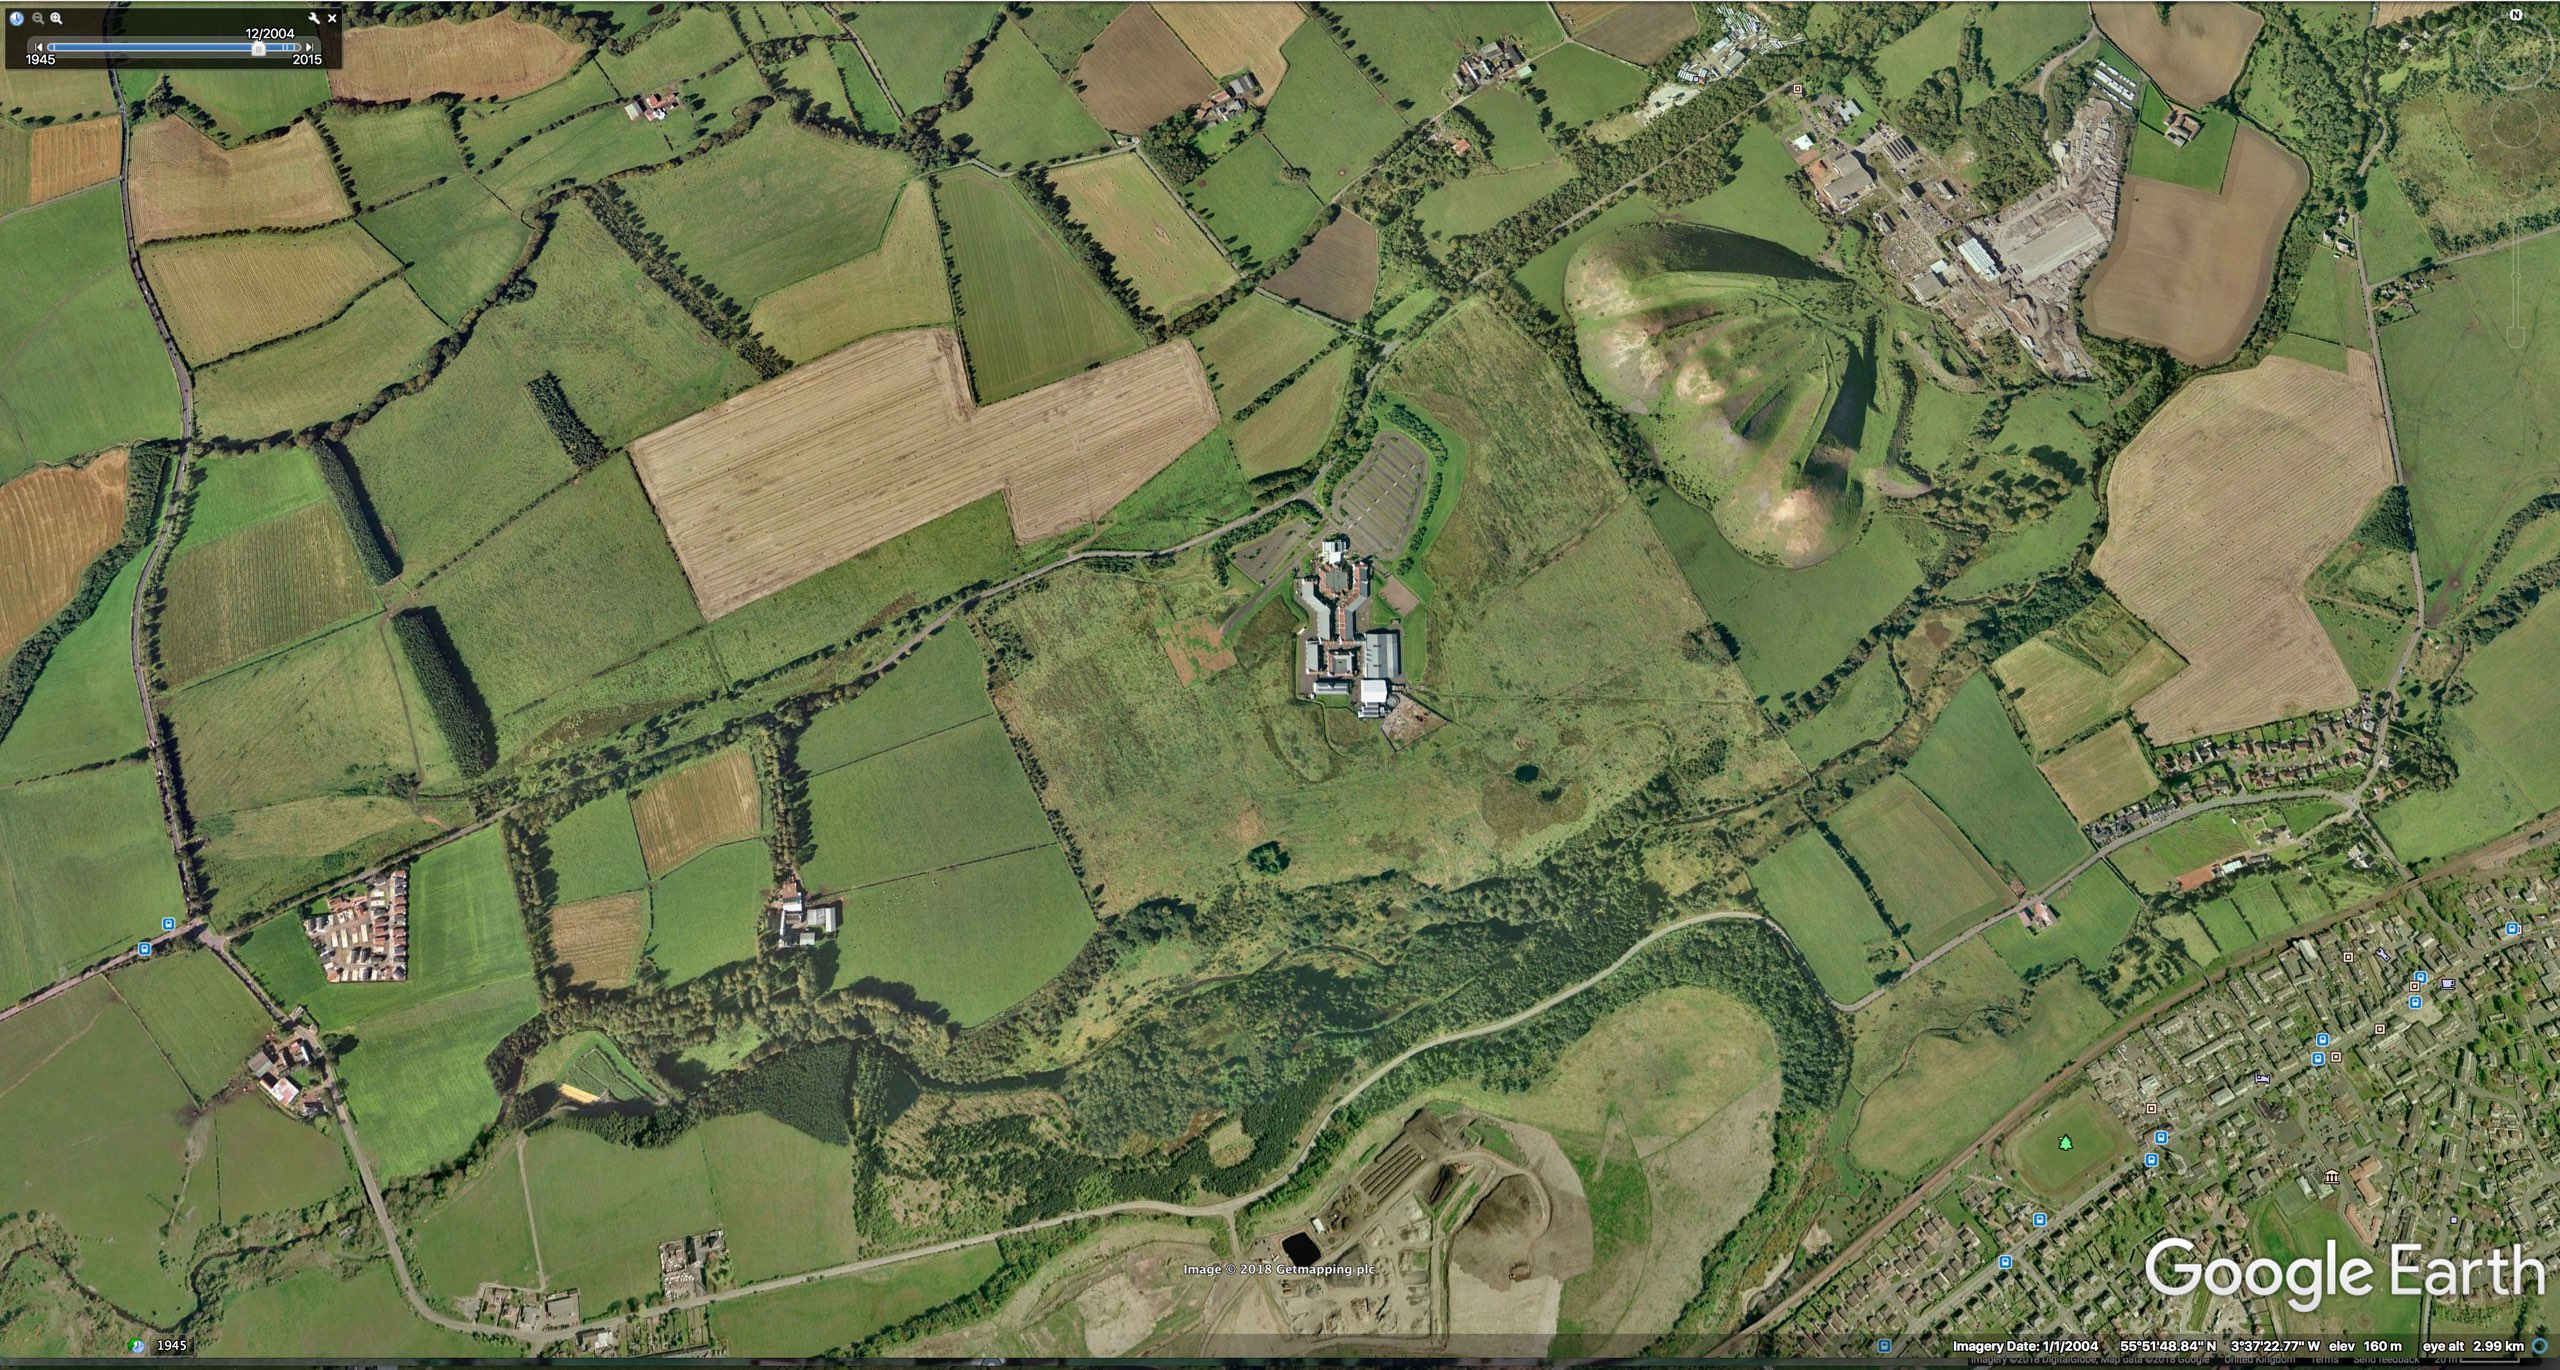 Google Earth screen shot of a contemporary Five Sisters, alongside Cuthill mine water treatment scheme (AERIAL LANDSCAPES 0)